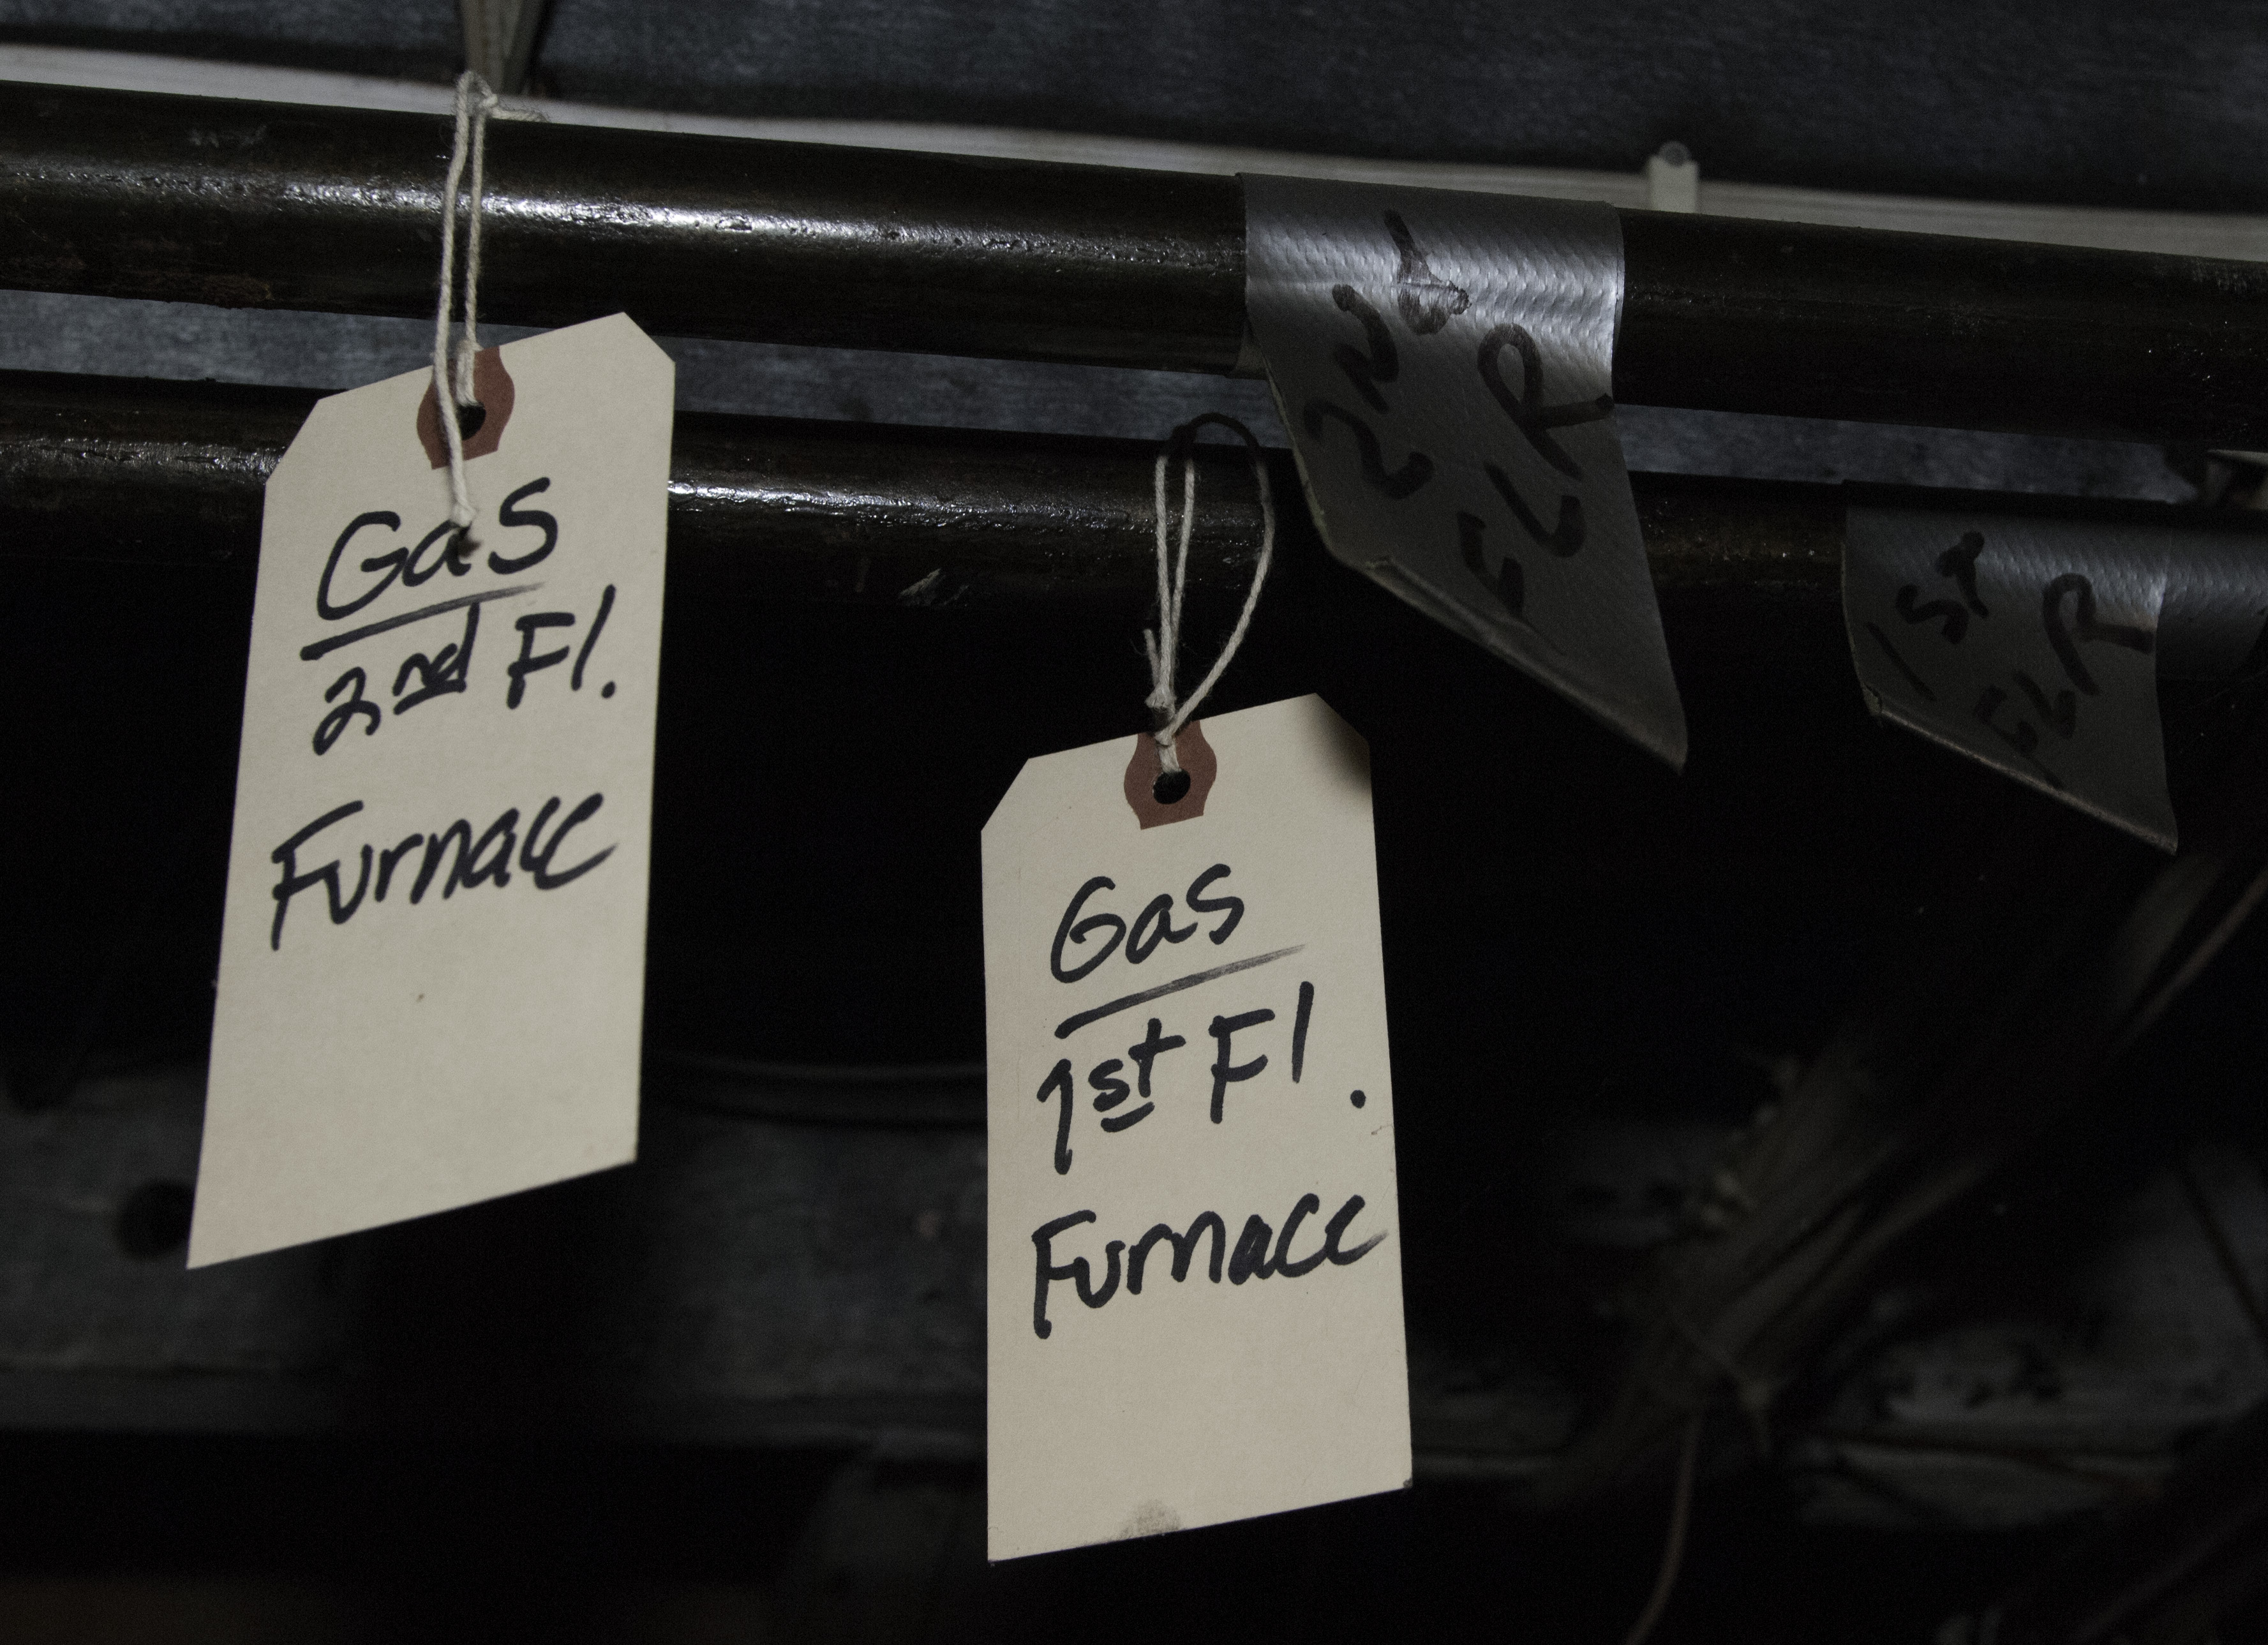 Tags on gas furnace pipes